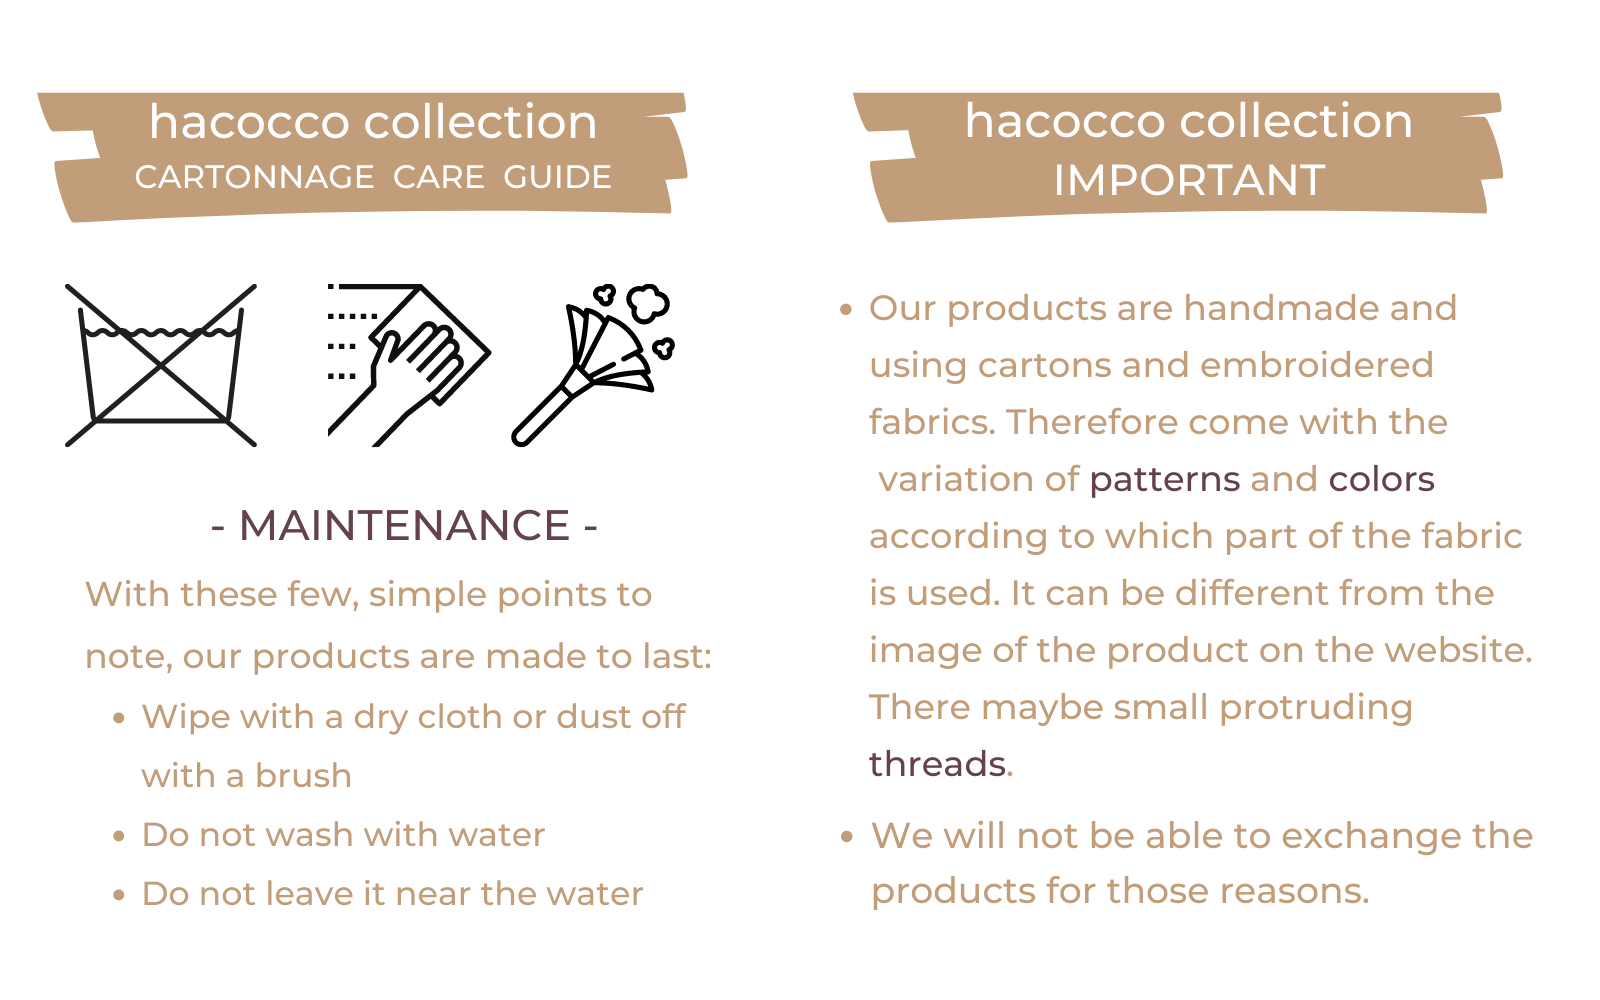 cartonnage care guide